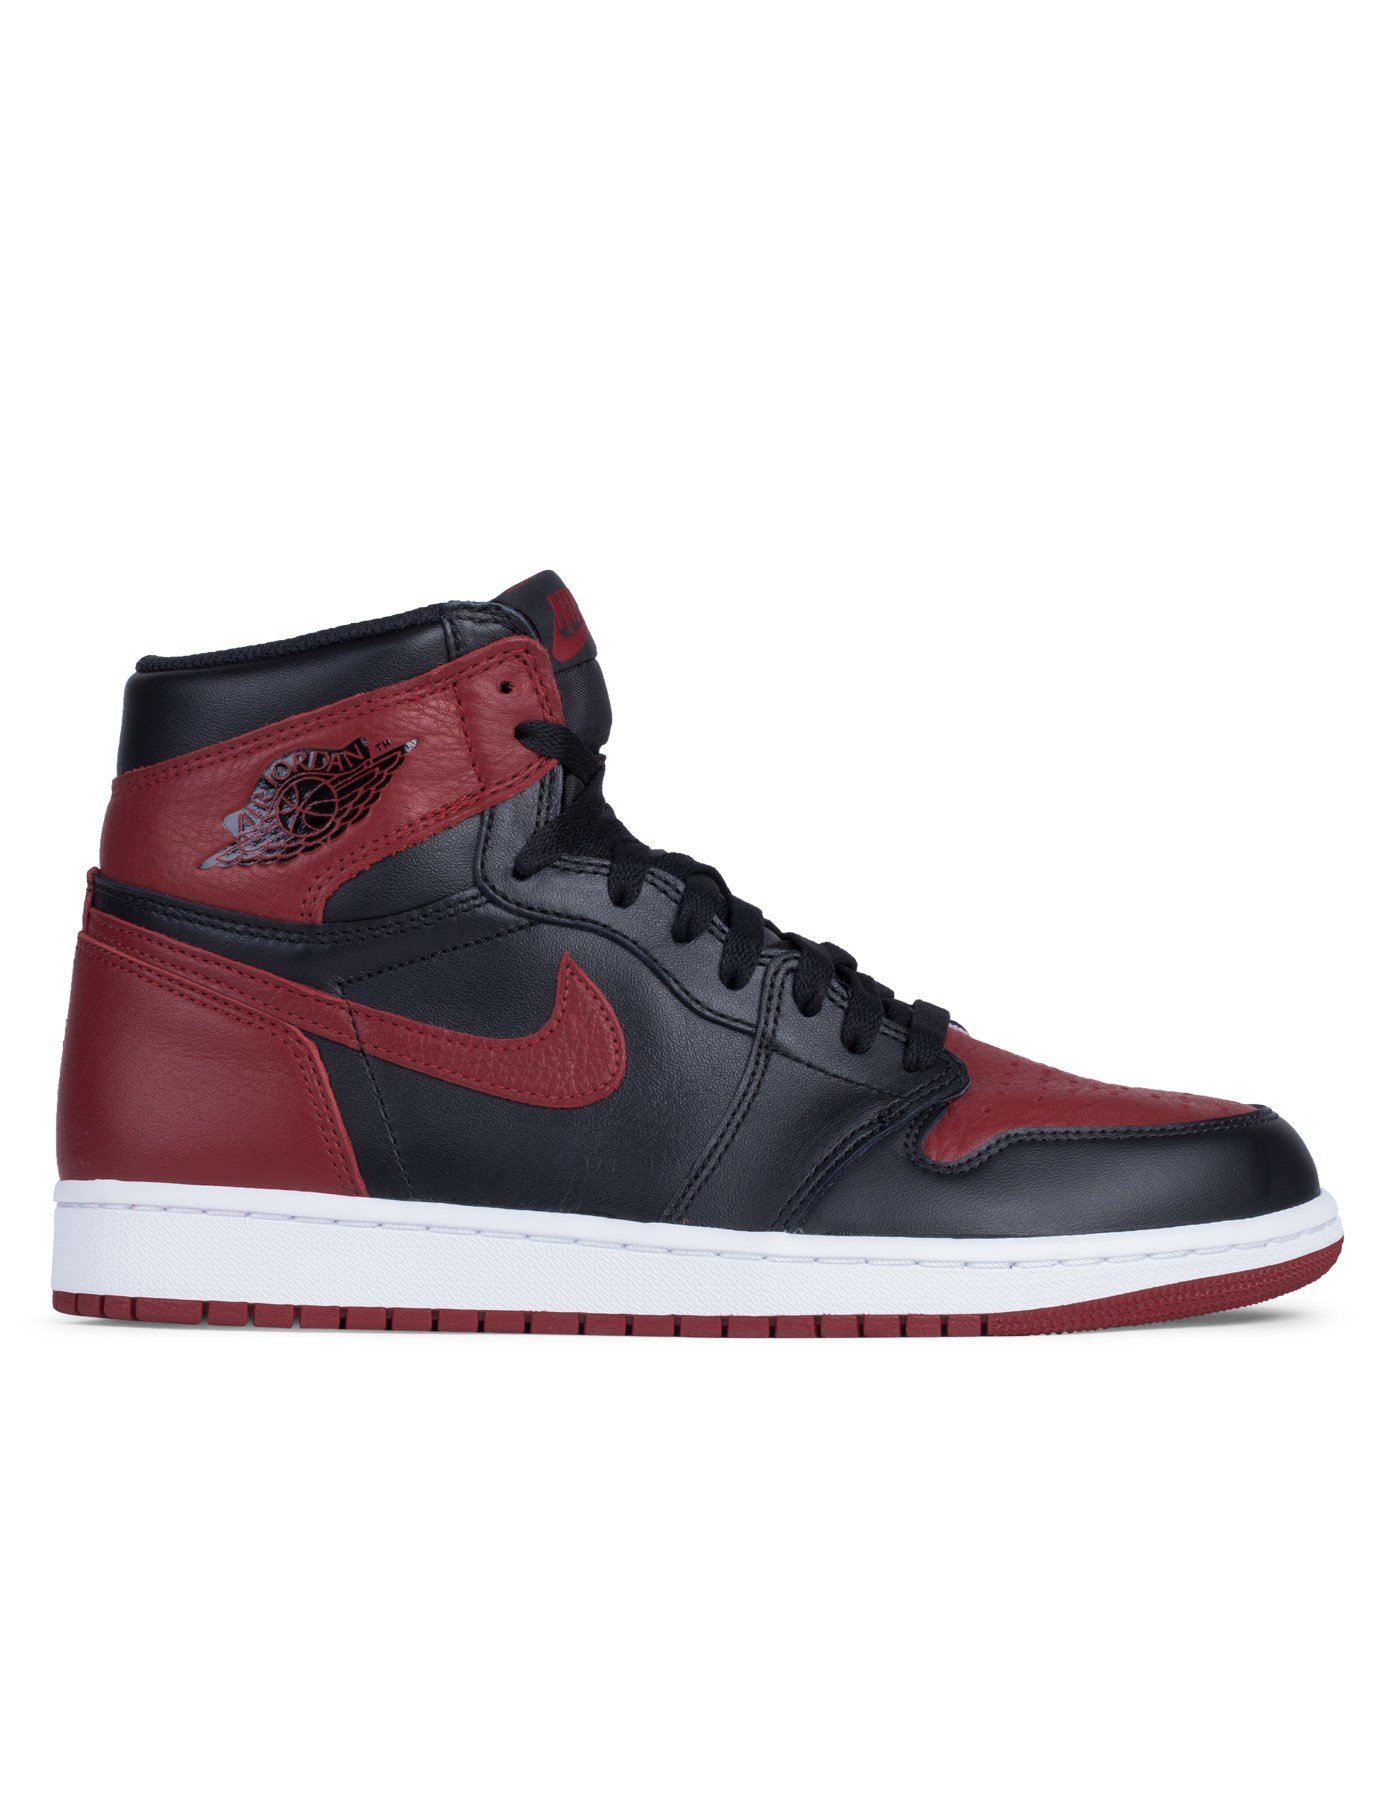 nike air jordan 1 bred 2016 retro in blue for men lyst